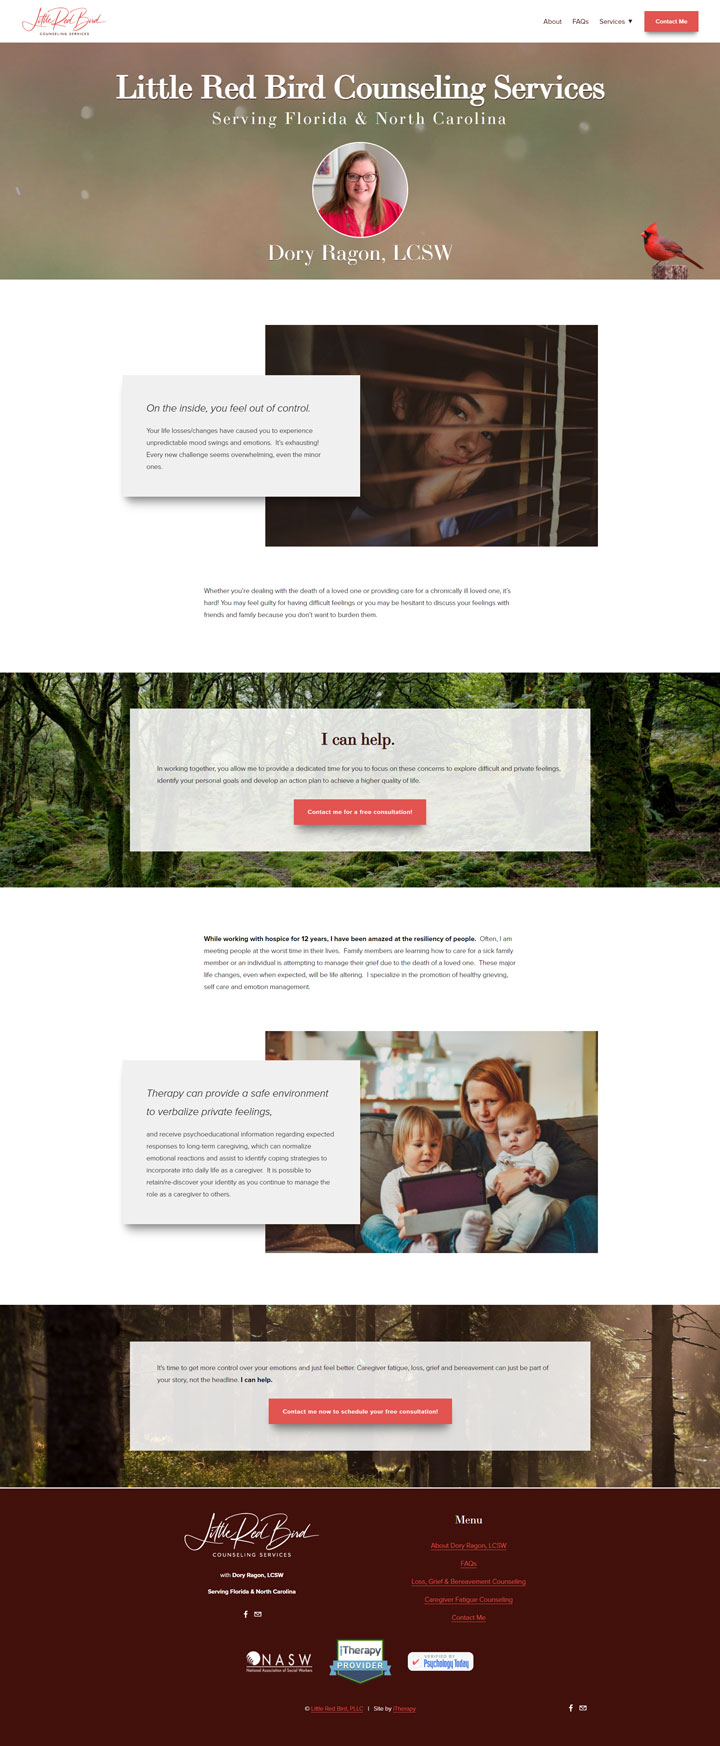 Little Red Bird Counseling Services - Standard Site by iTherapy